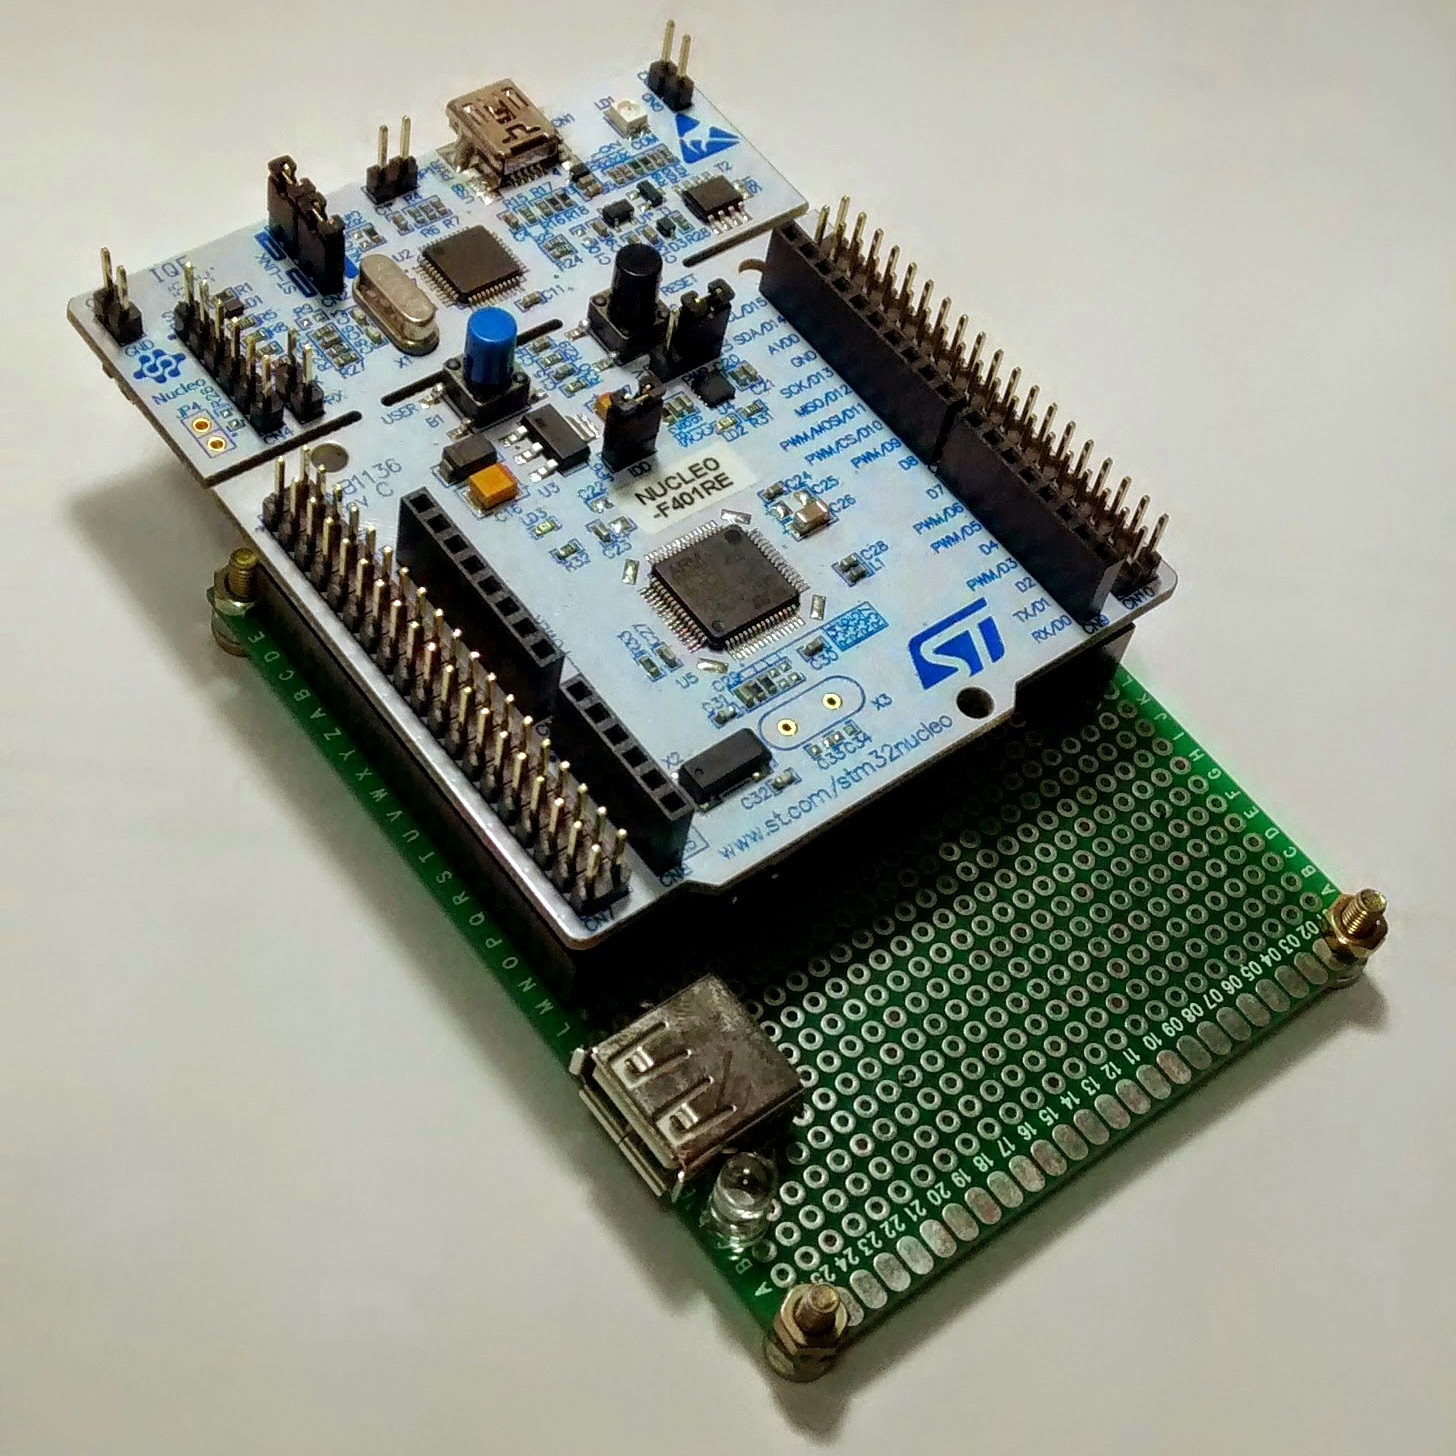 Moreto's Projects: STM32F4 USB HOST AND DEVICE